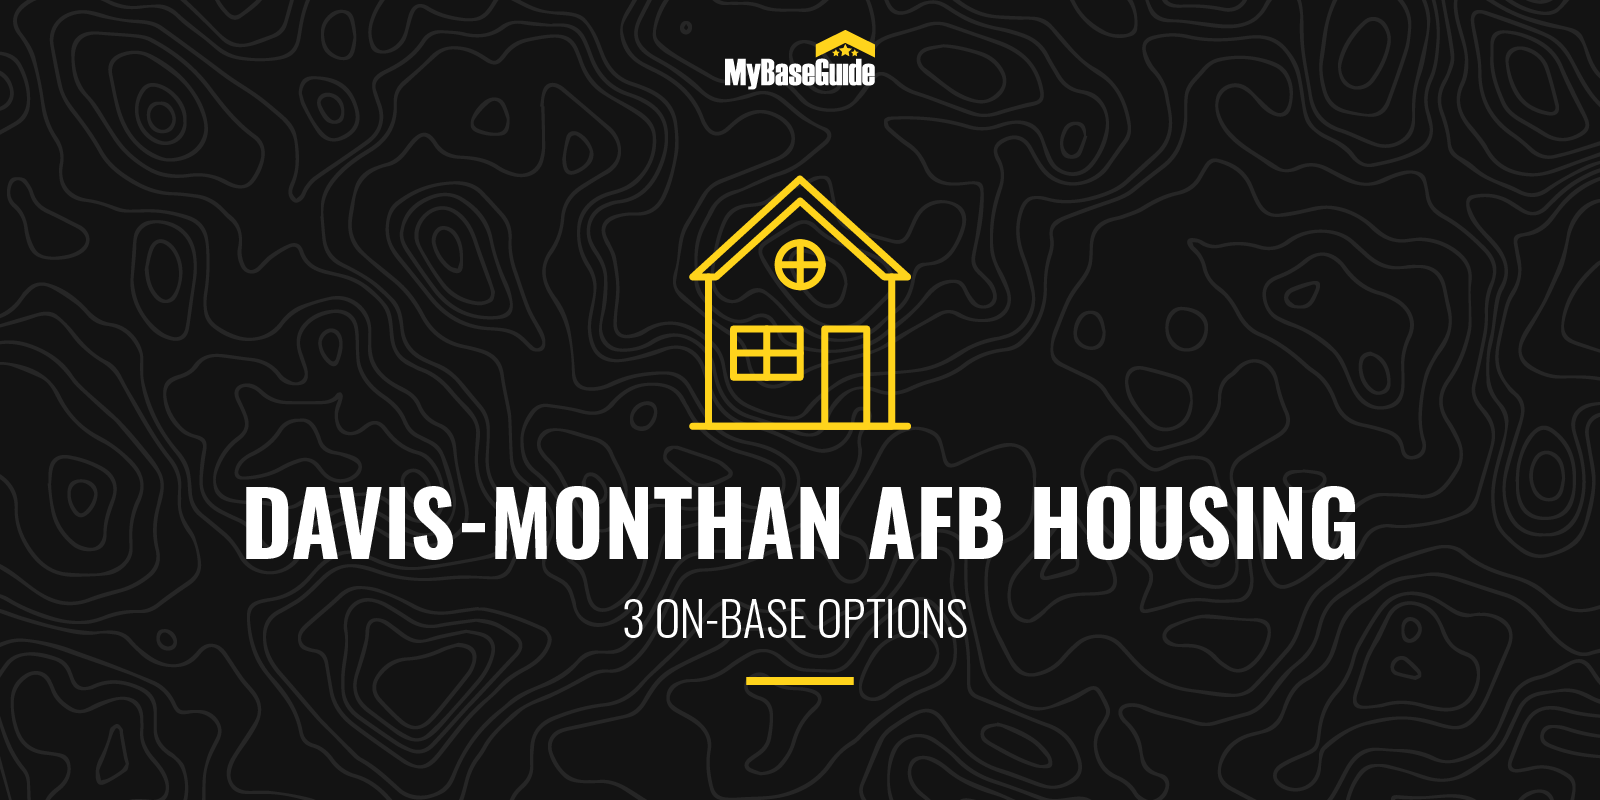 Davis-Monthan AFB Housing: 3 On Base Options